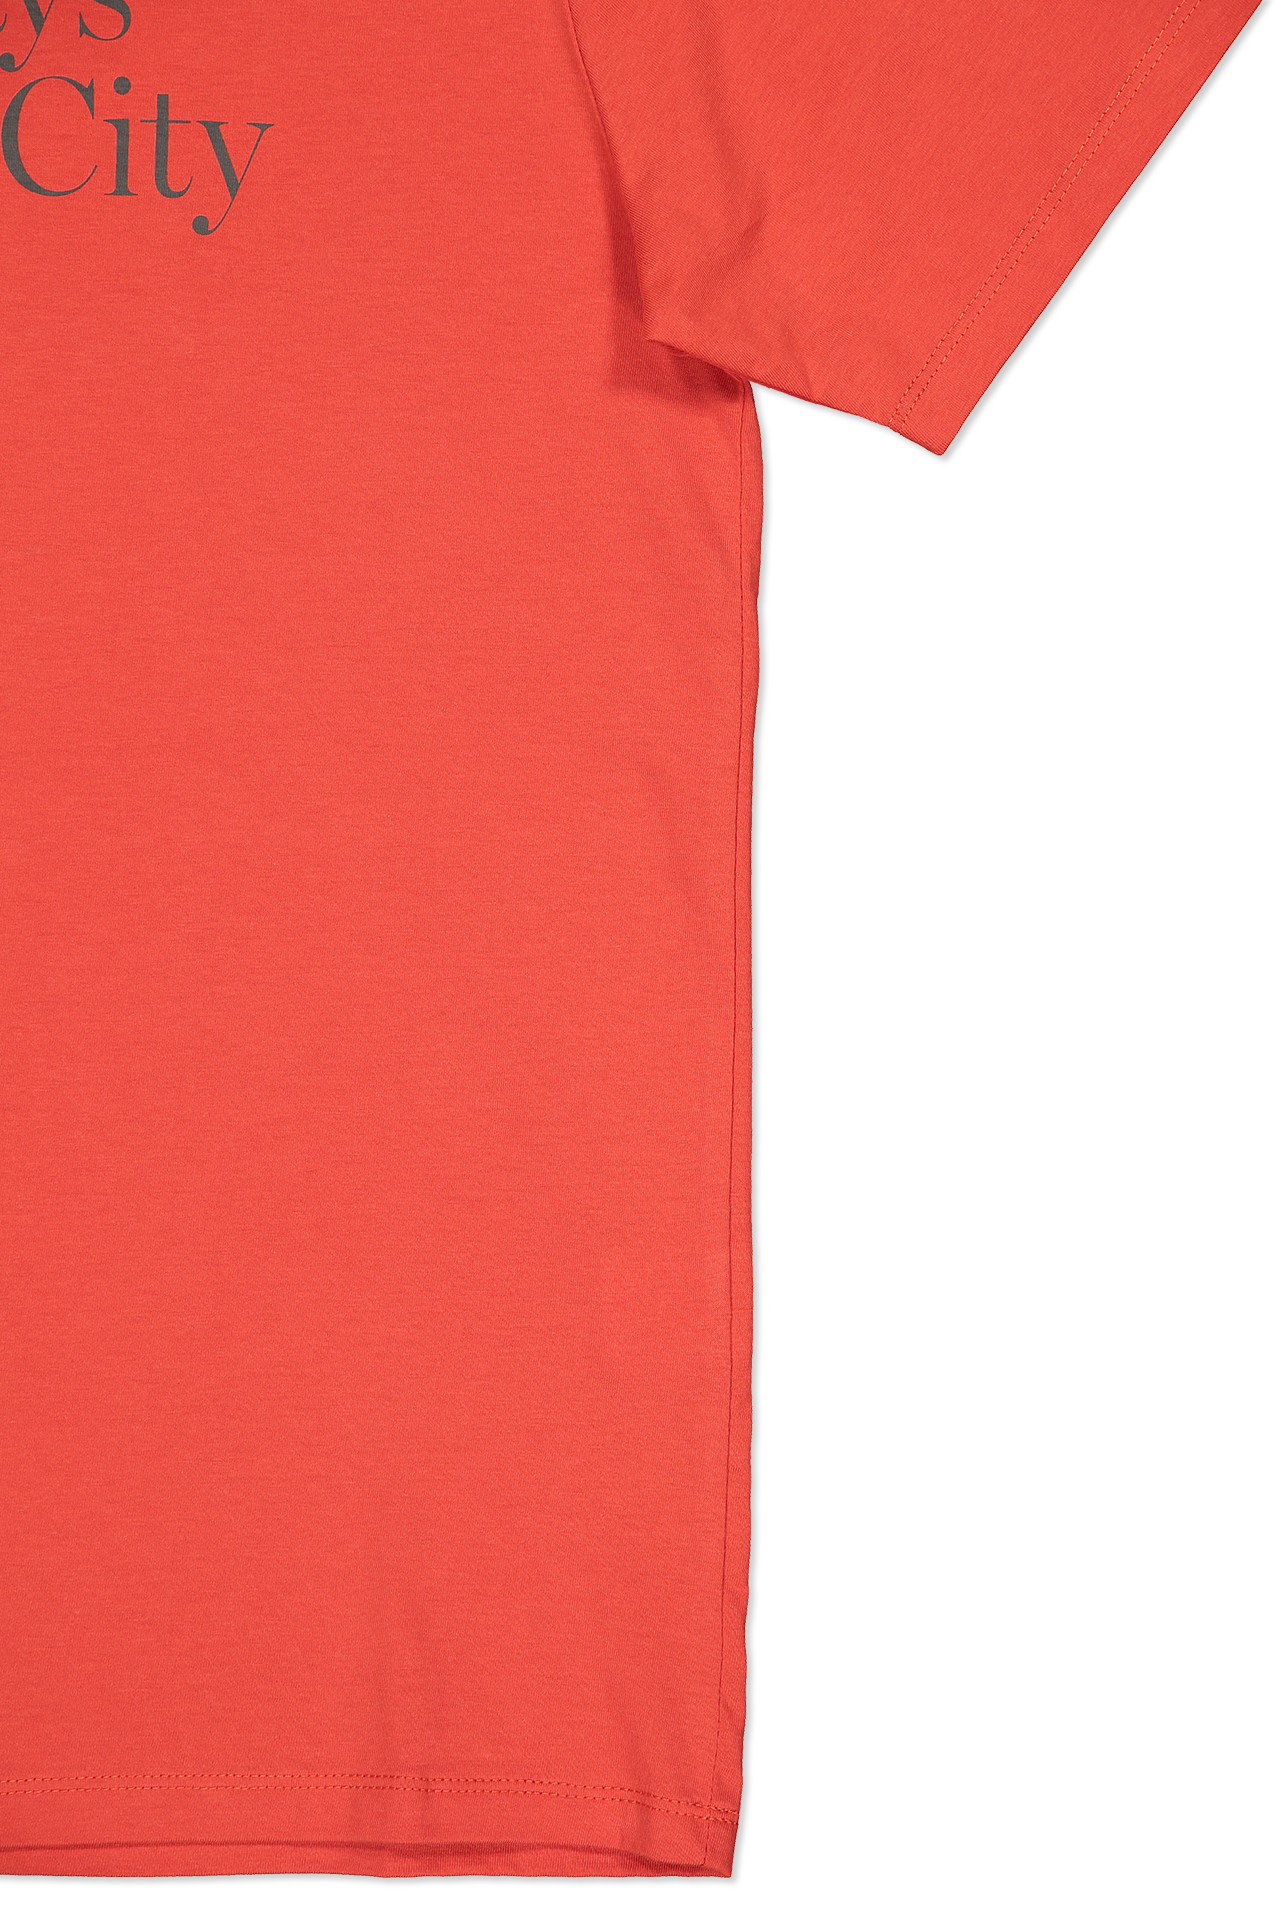 Cuff And Hem Image Of Saturdays NYC Miller Standard Short Sleeve Tee Chili